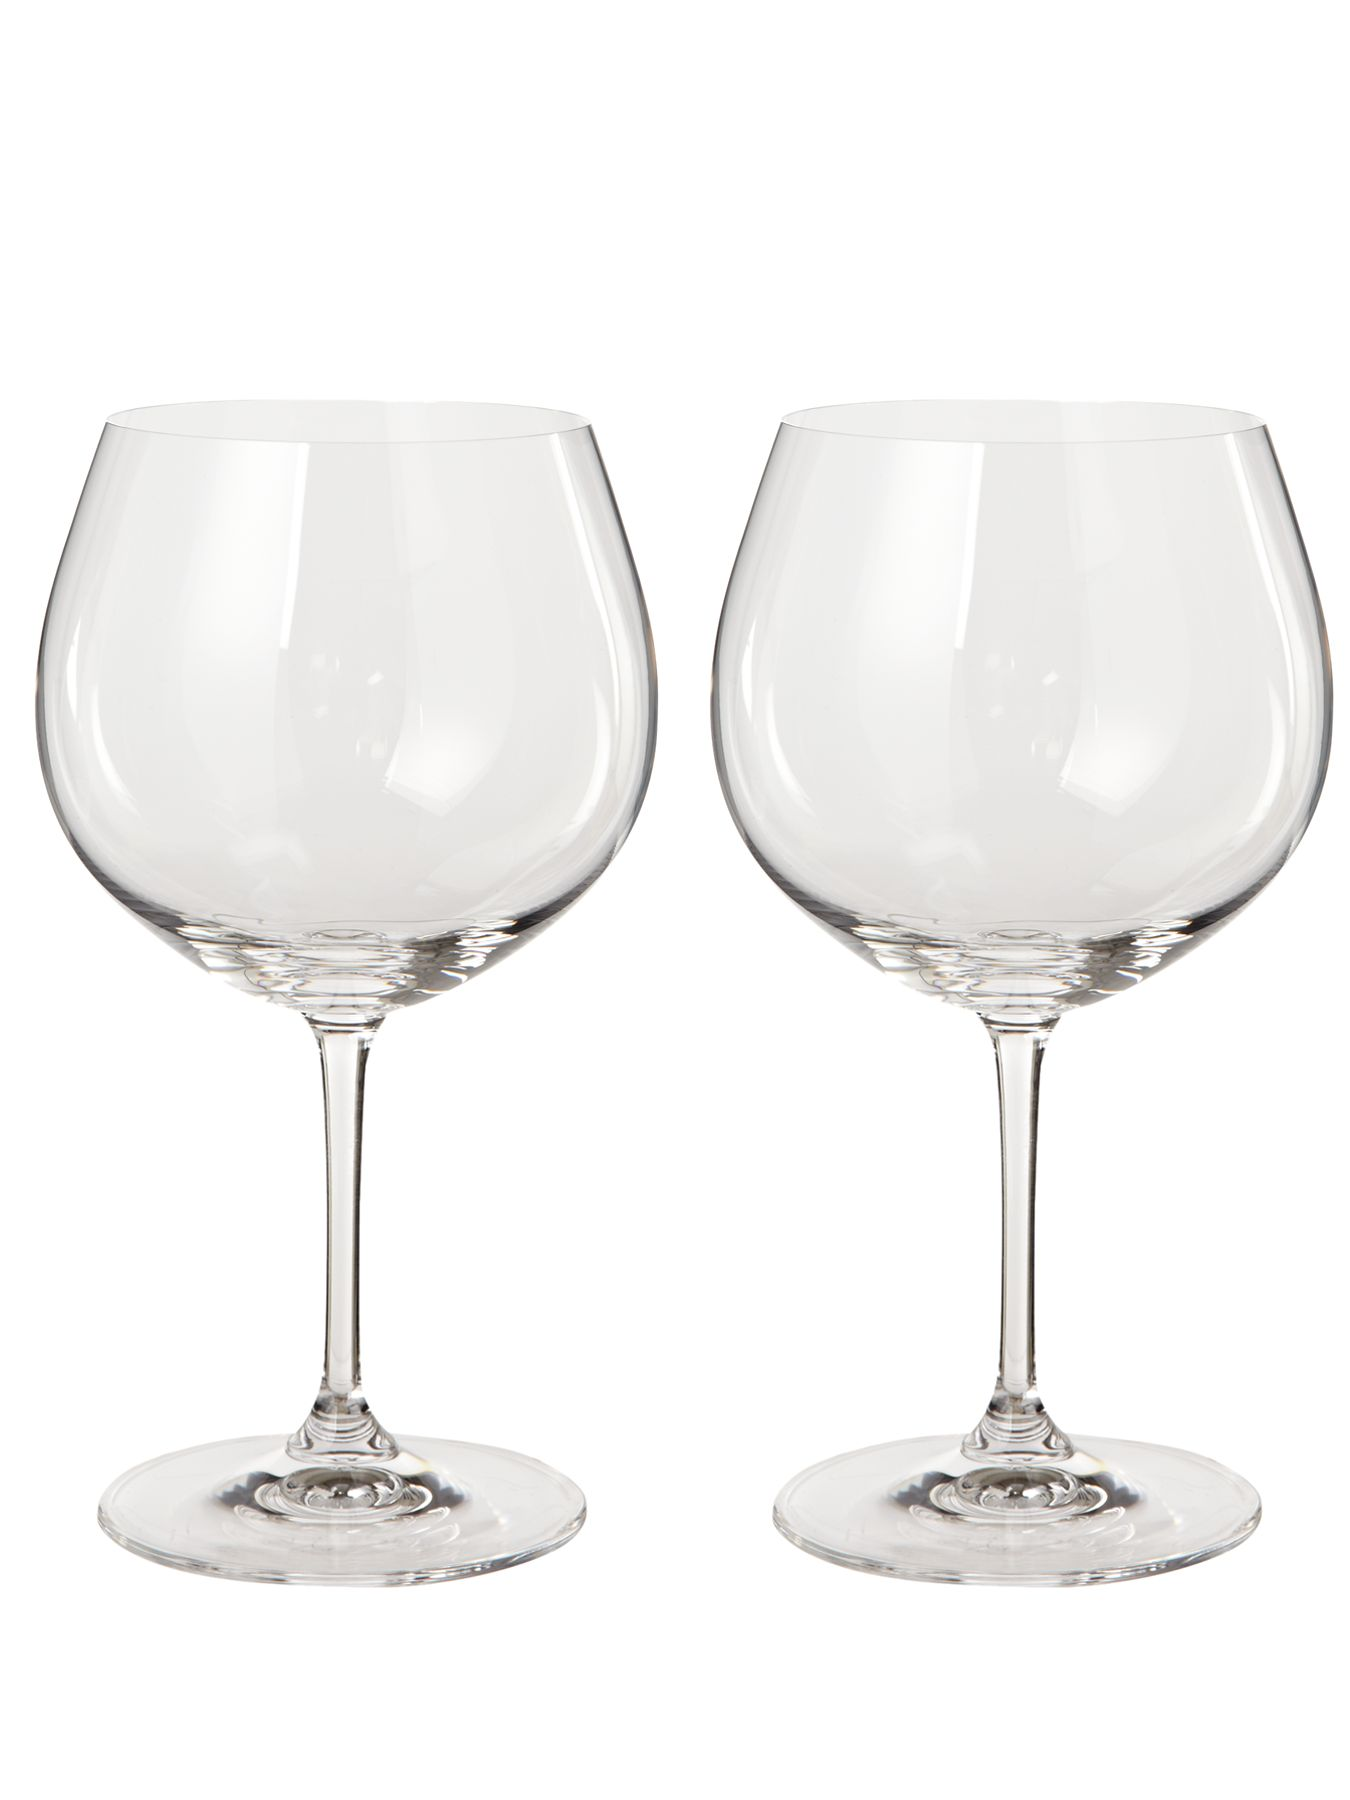 Vinum oaked chardonnay glasses box of 2